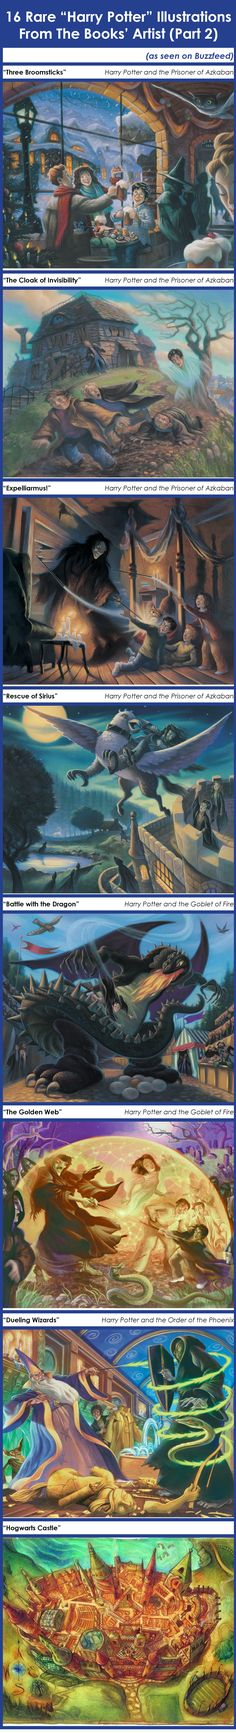 "16 Rare ""Harry Potter"" Illustrations From The Books' Artist Mary GrandPre (PART 2)"